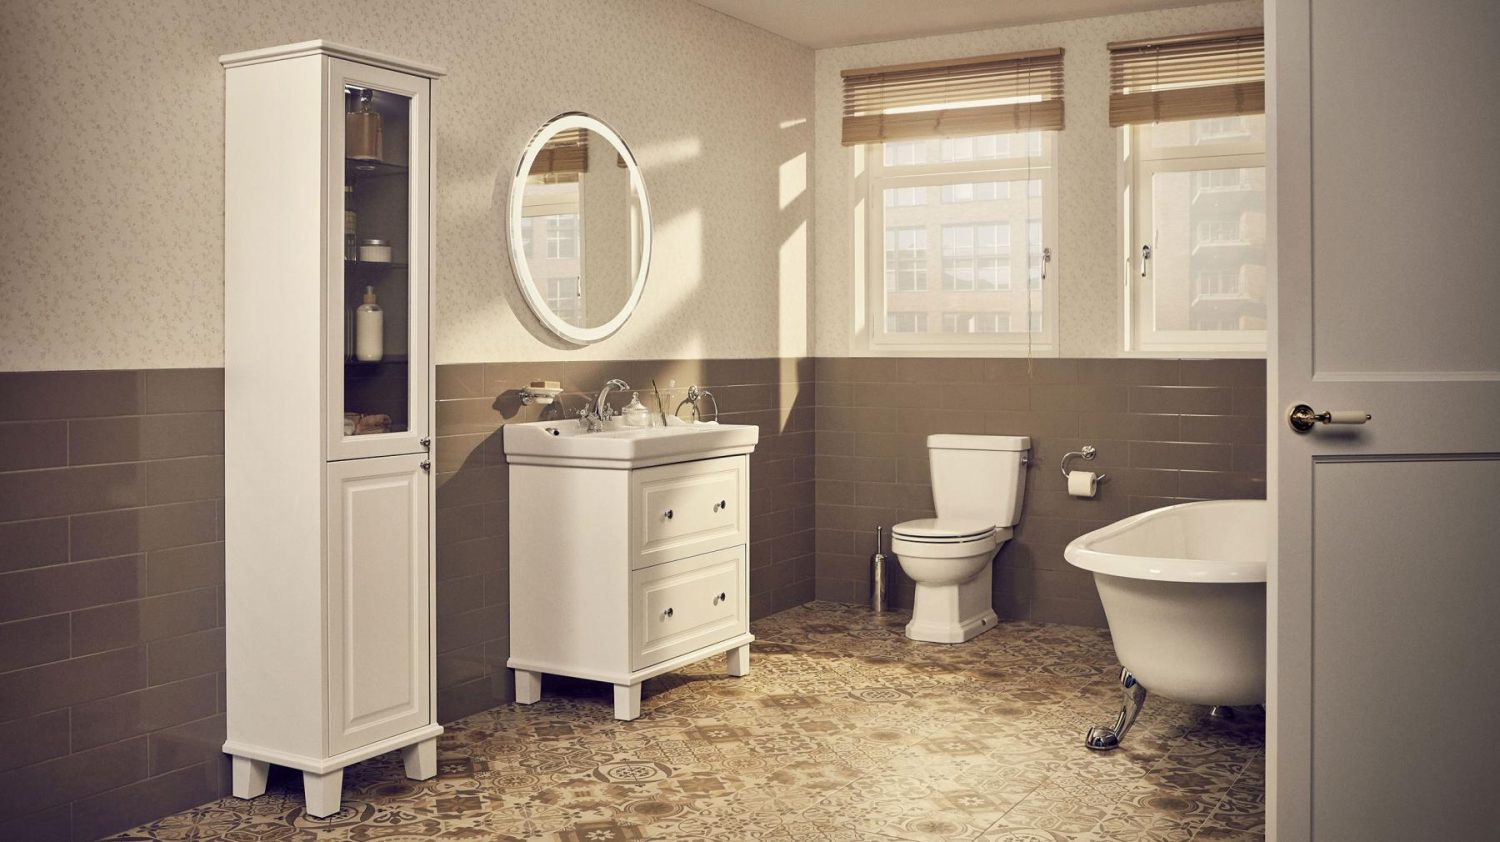 carmen collection of mosbuild best bathroom exhibitors mosbuild best bathroom exhibitors MOSBUILD 2019 BEST BATHROOM EXHIBITORS carmen furniture white 900x505 a